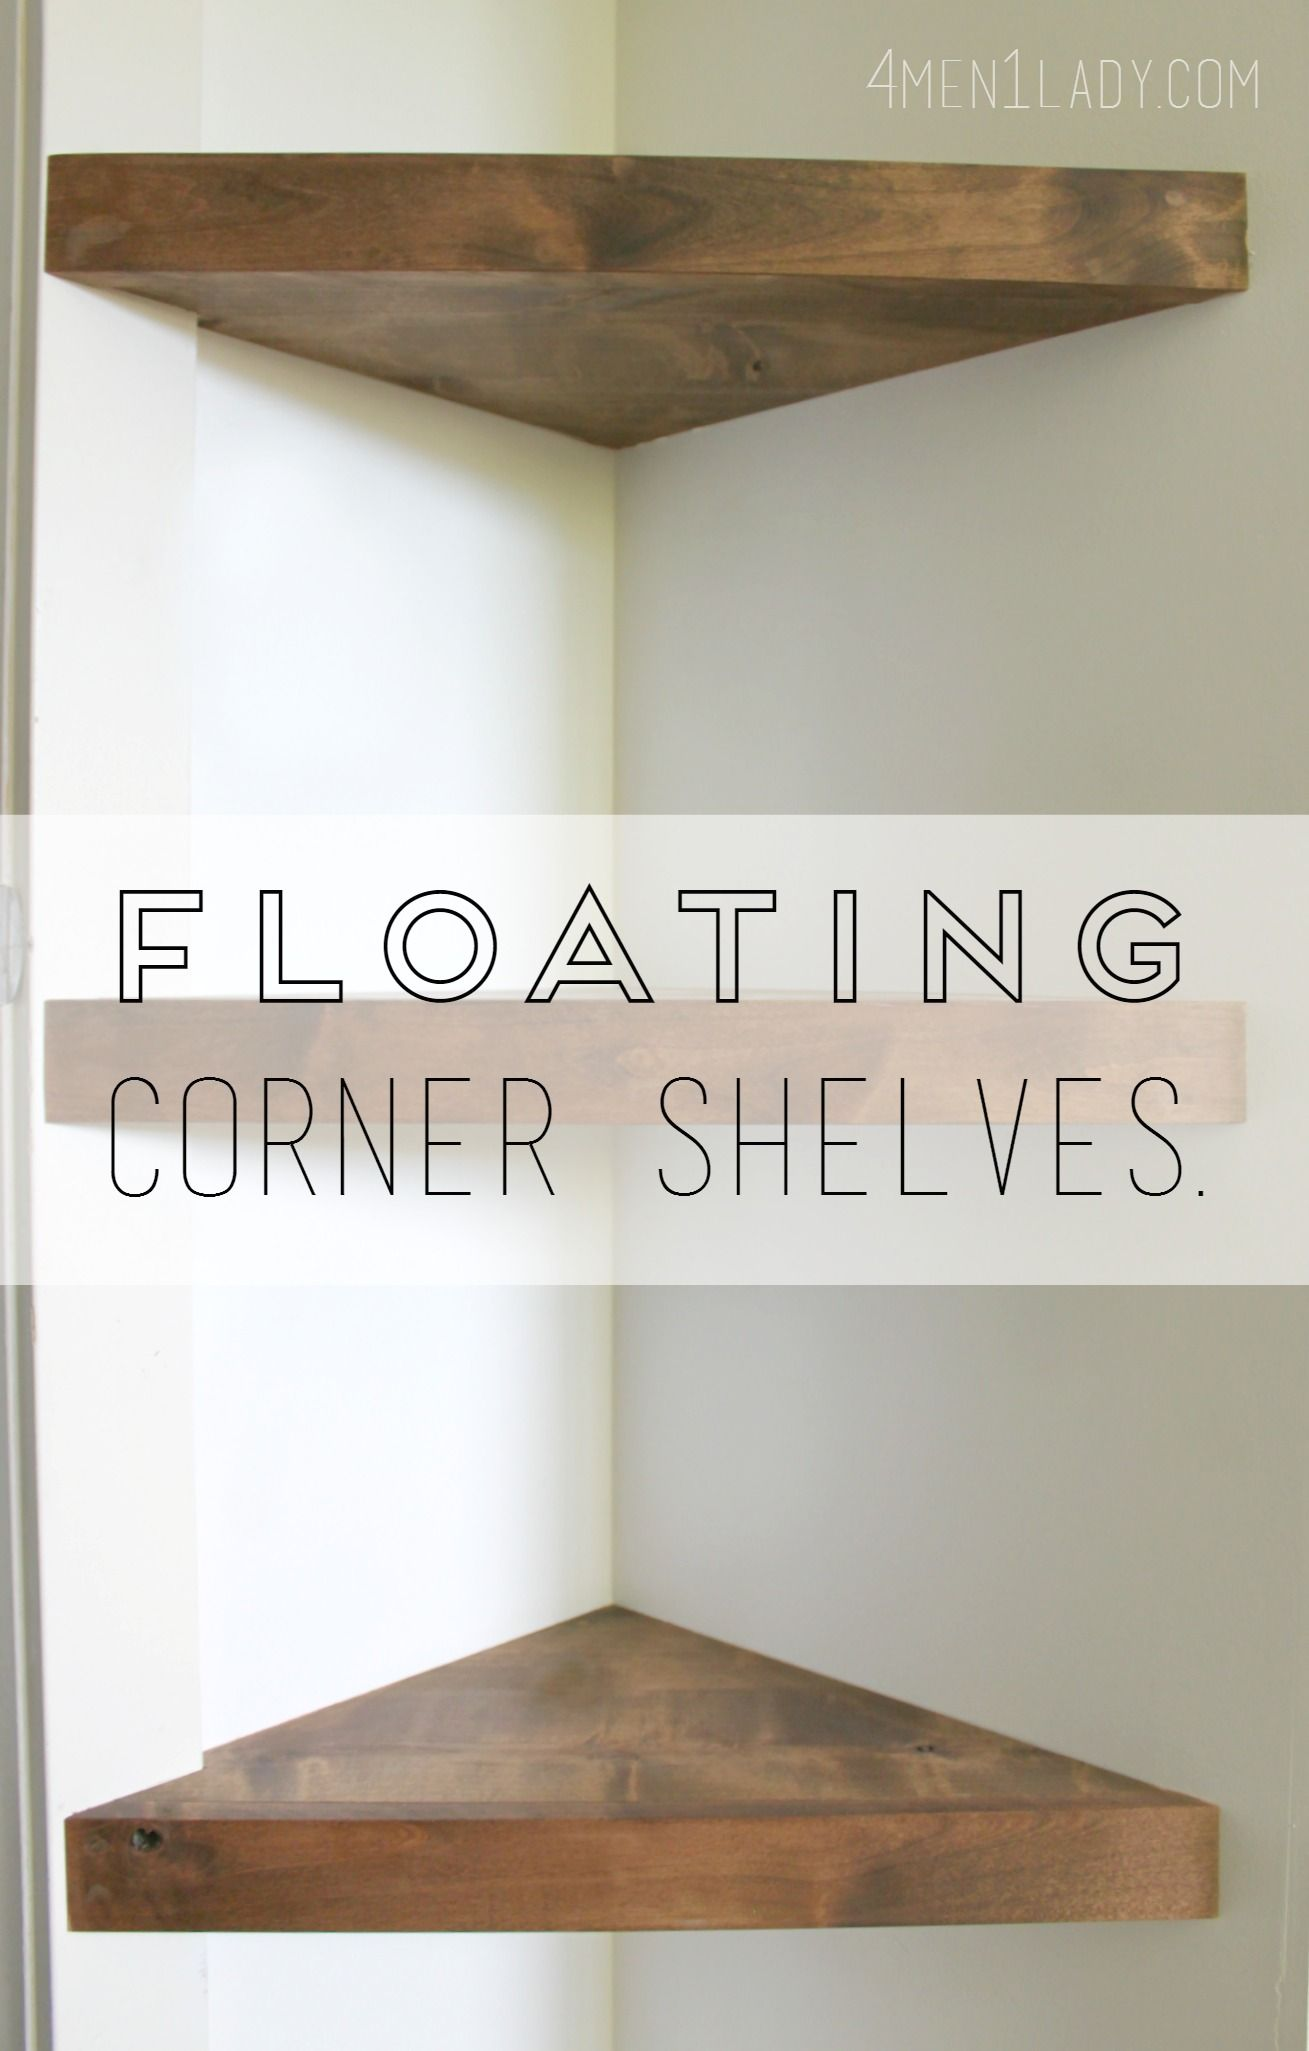 brilliantly creative diy shelving ideas apartment fixes small floating corner shelf img shelves kitchen bedroom rustic reach closet storage inch wide design within bookshelf barn